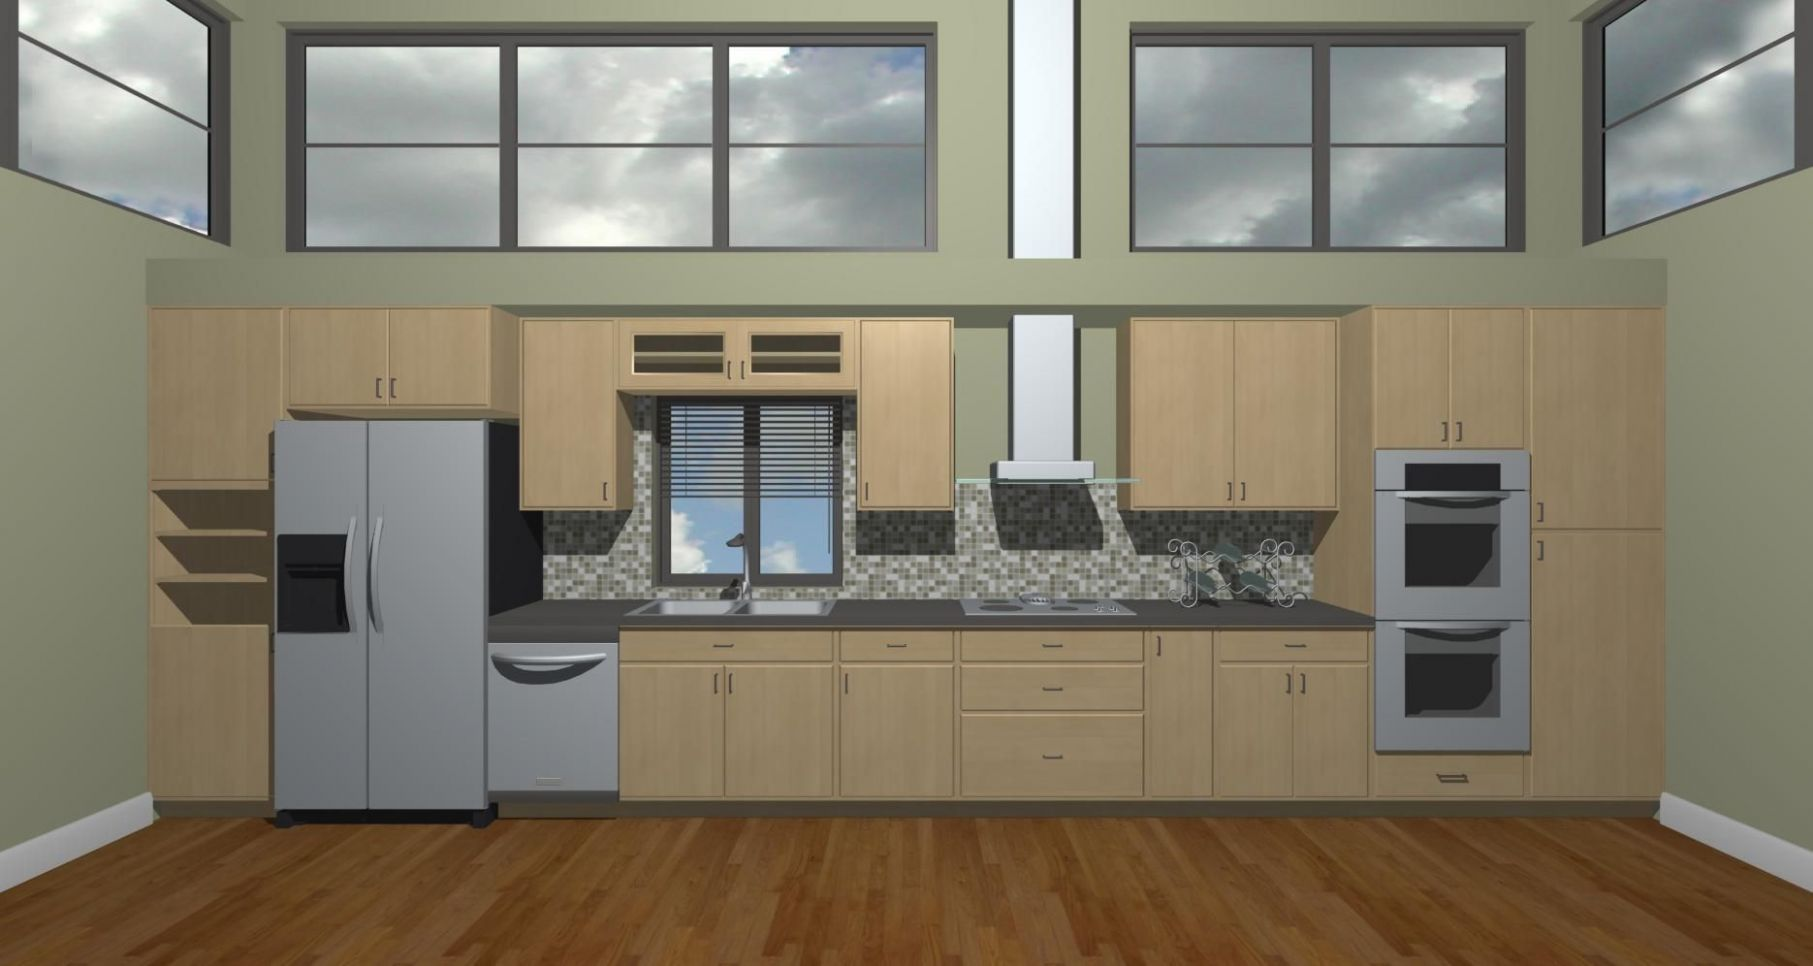 Straight Line Kitchen - closest design to what we want   Straight ...